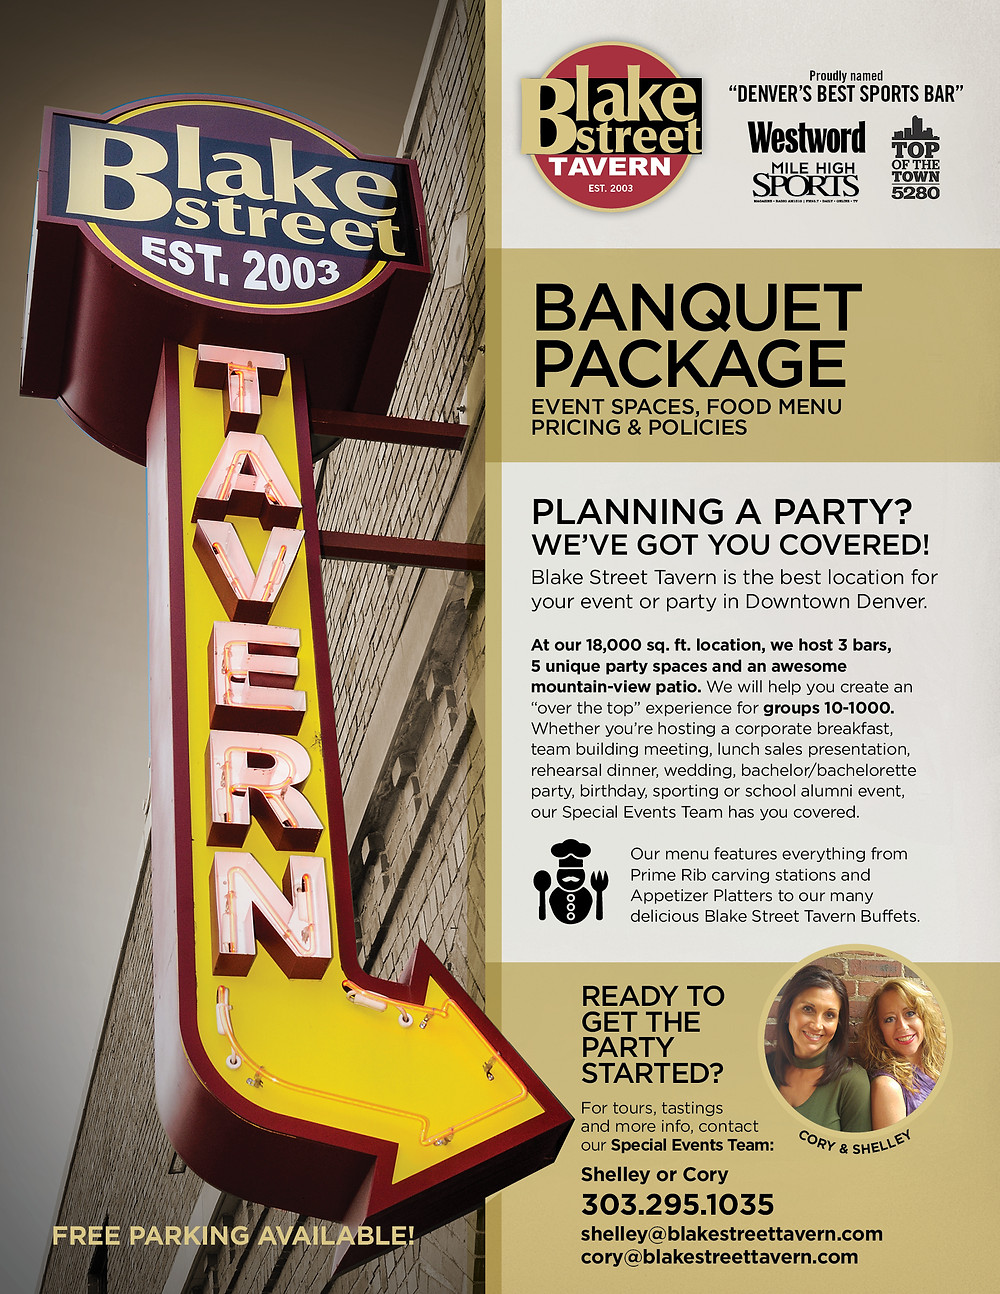 Free Meeting Space for Nonprofits in Denver - Blake Street Tavern has a great Banquet Menu